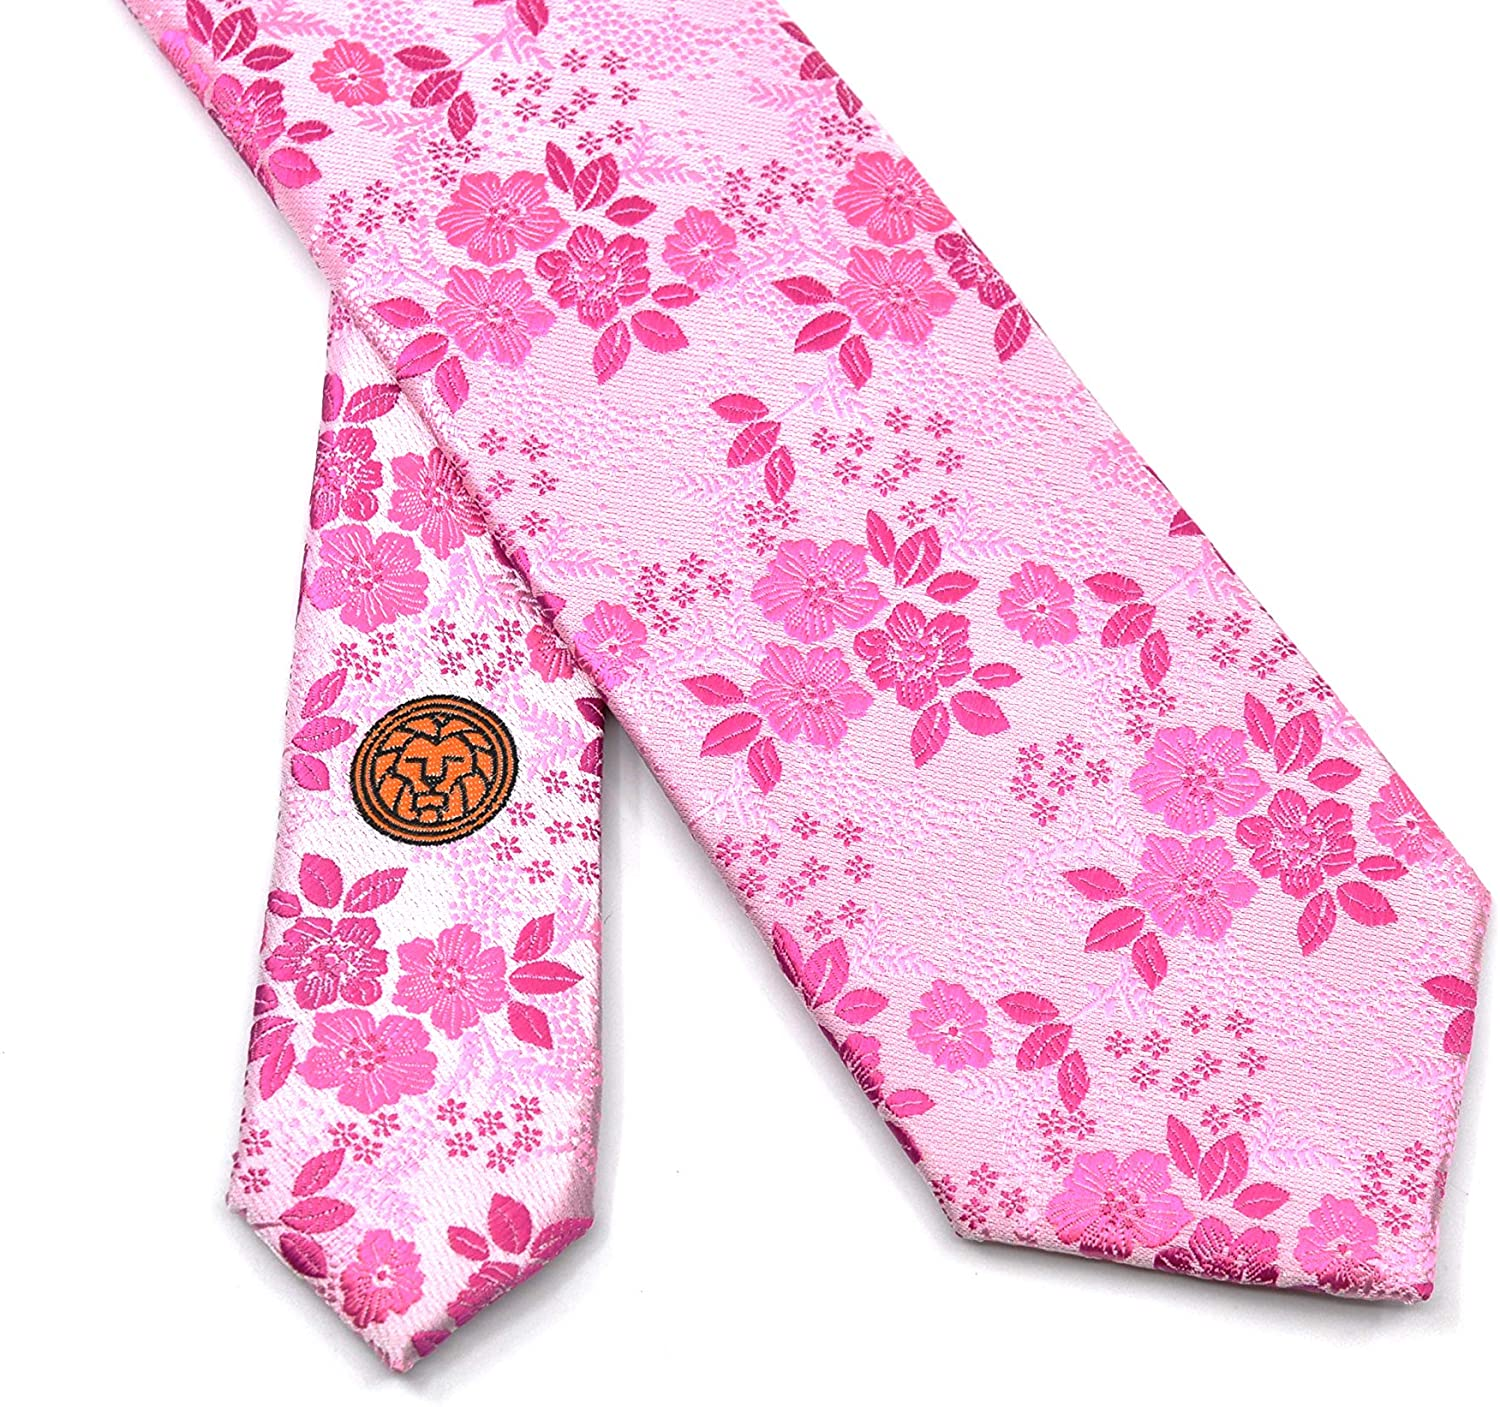 The Palermo - Pink Floral Mens Ties - TOUT Washable Neckties for Men